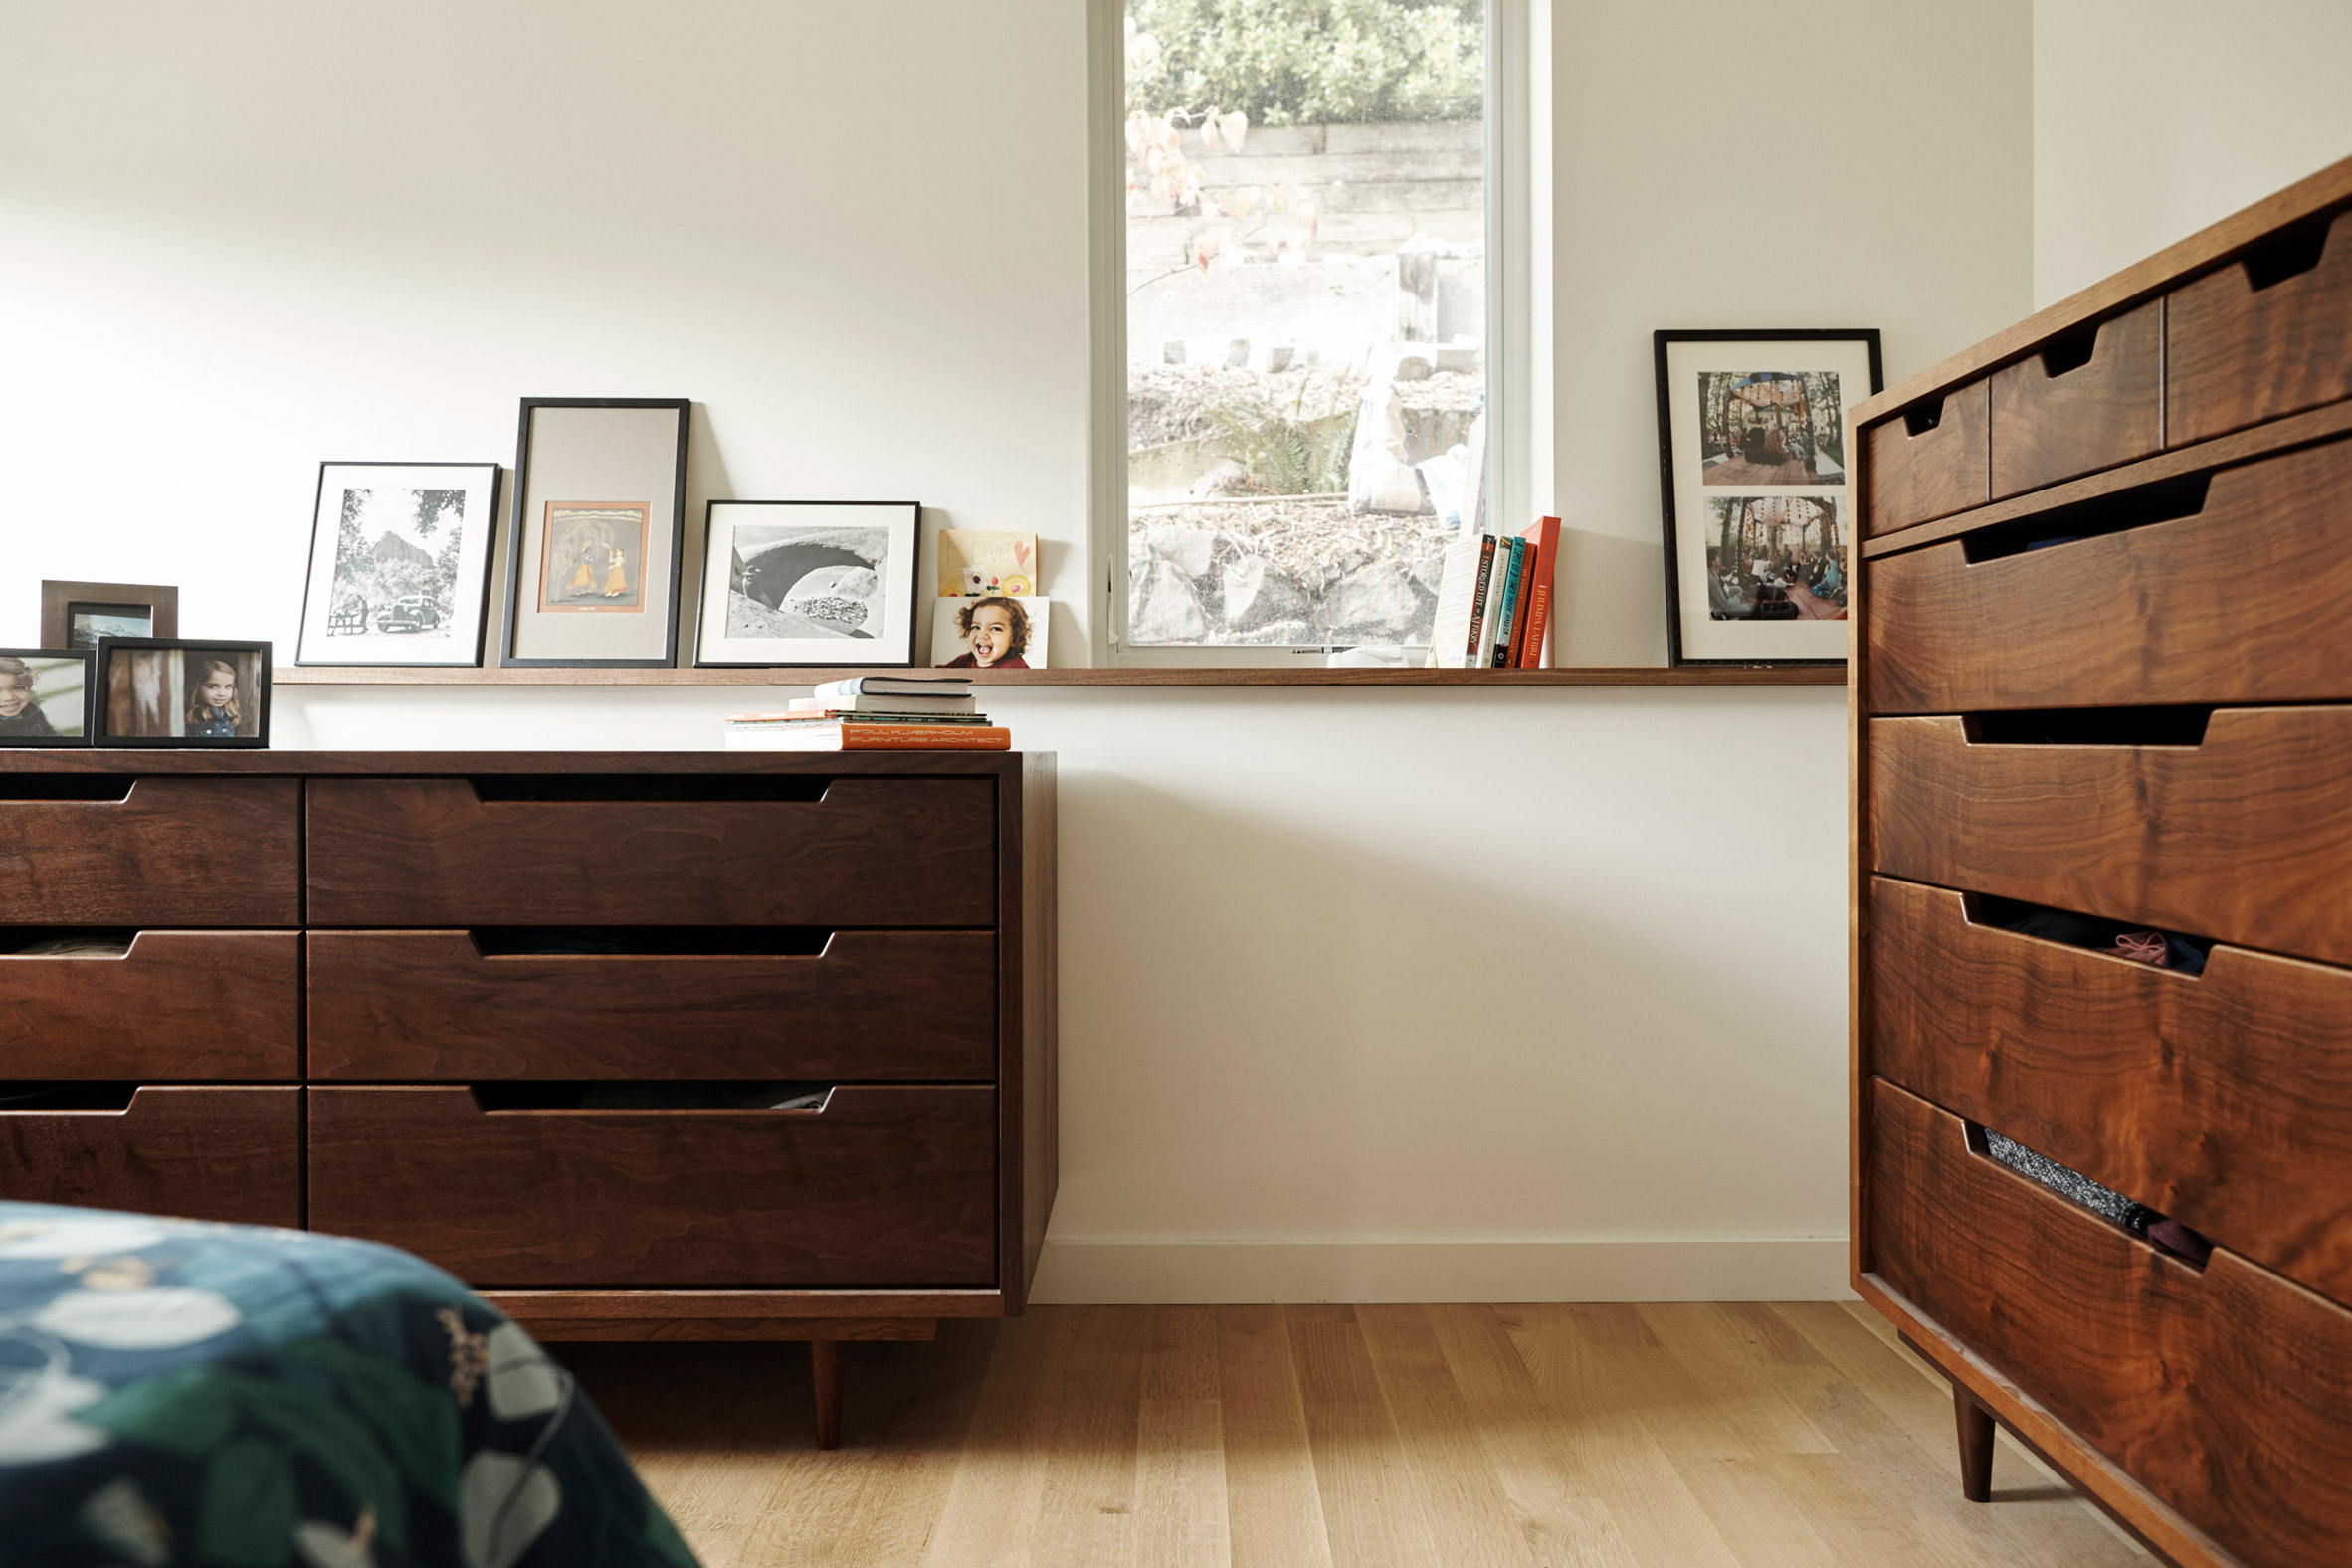 Fivedot and Chris Armes designed the cabinetry